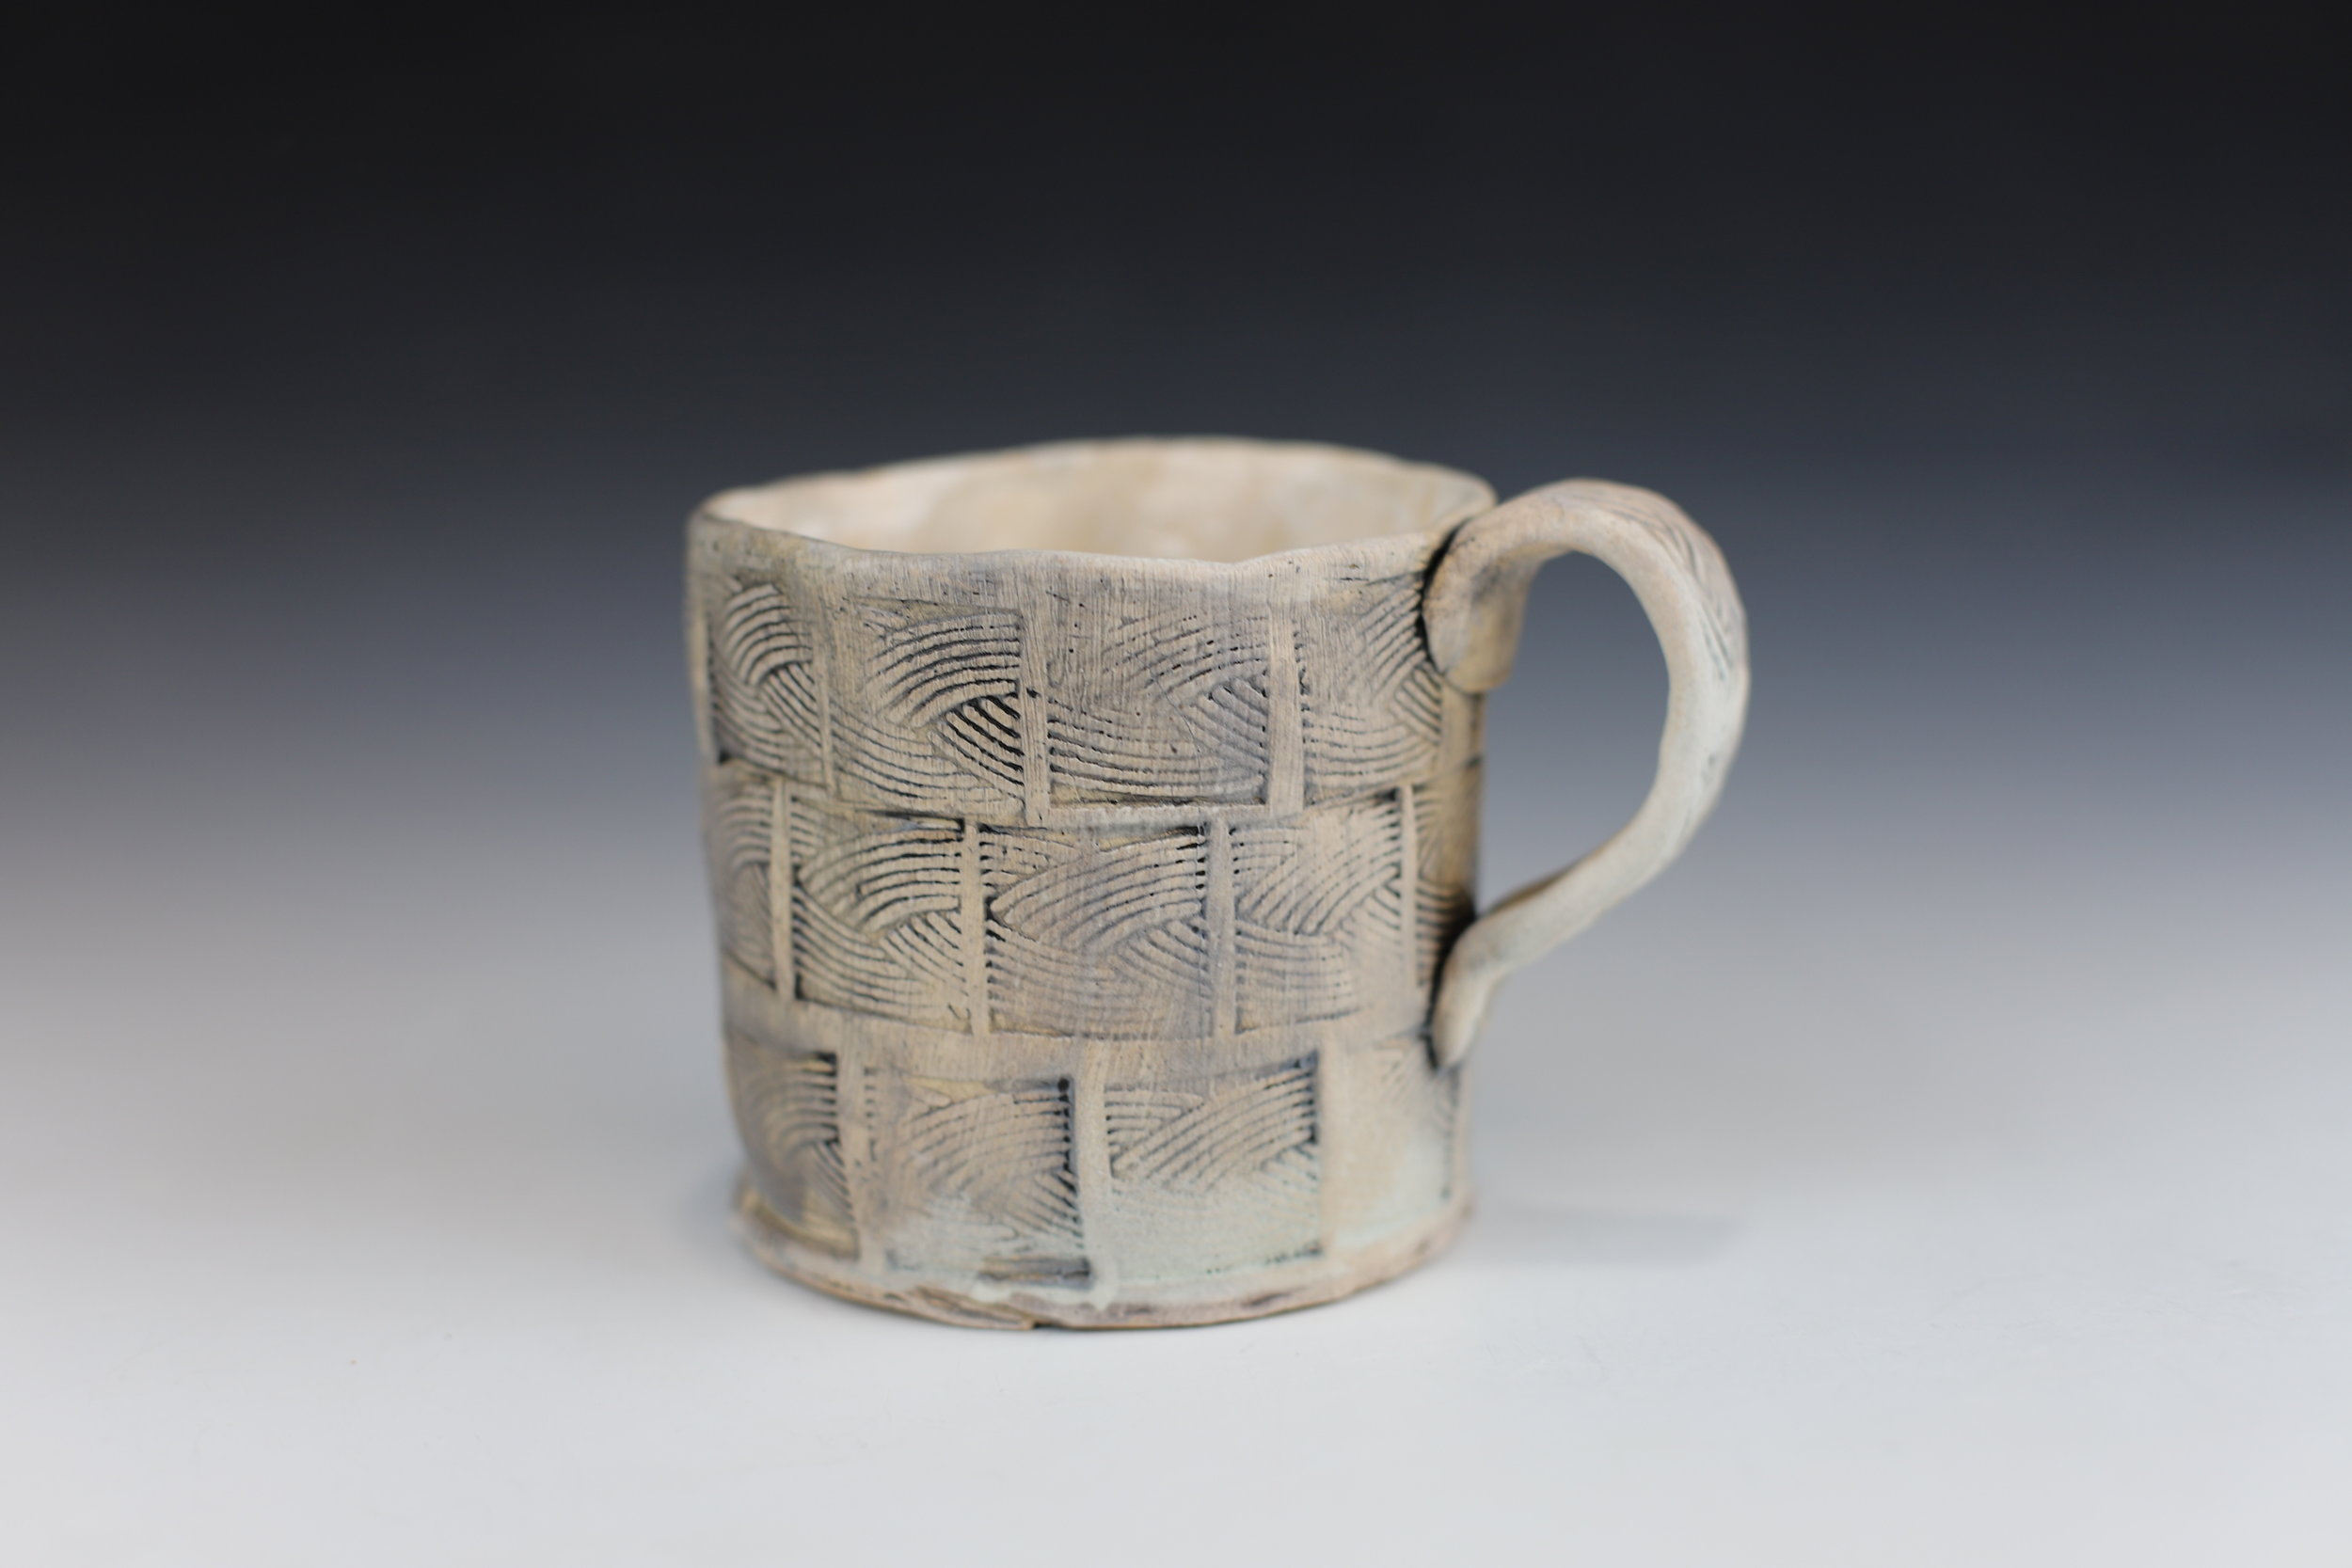 MUGS! - Come in and hand build a custom mug in this workshop. We will help you personalize it by adding a hande and any other personal touches you would like.**kids ages 8 and under MUST be accompanied by an adult**